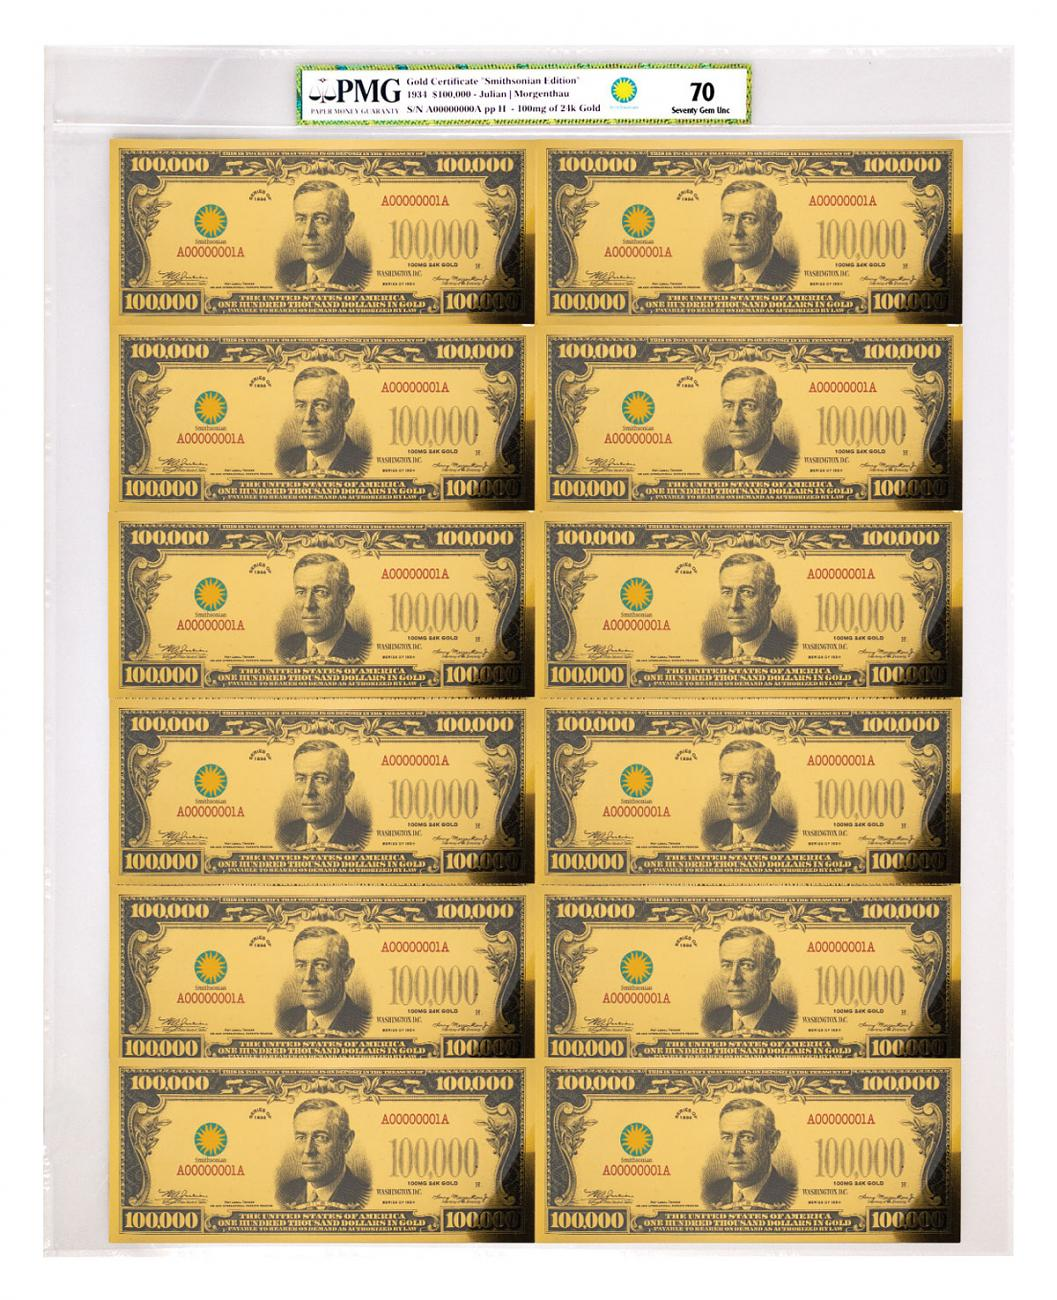 (2017) $100,000 Gold Certificate - Smithsonian Edition 1934 (Treasury Specimen Sheet) PMG 70 UNC